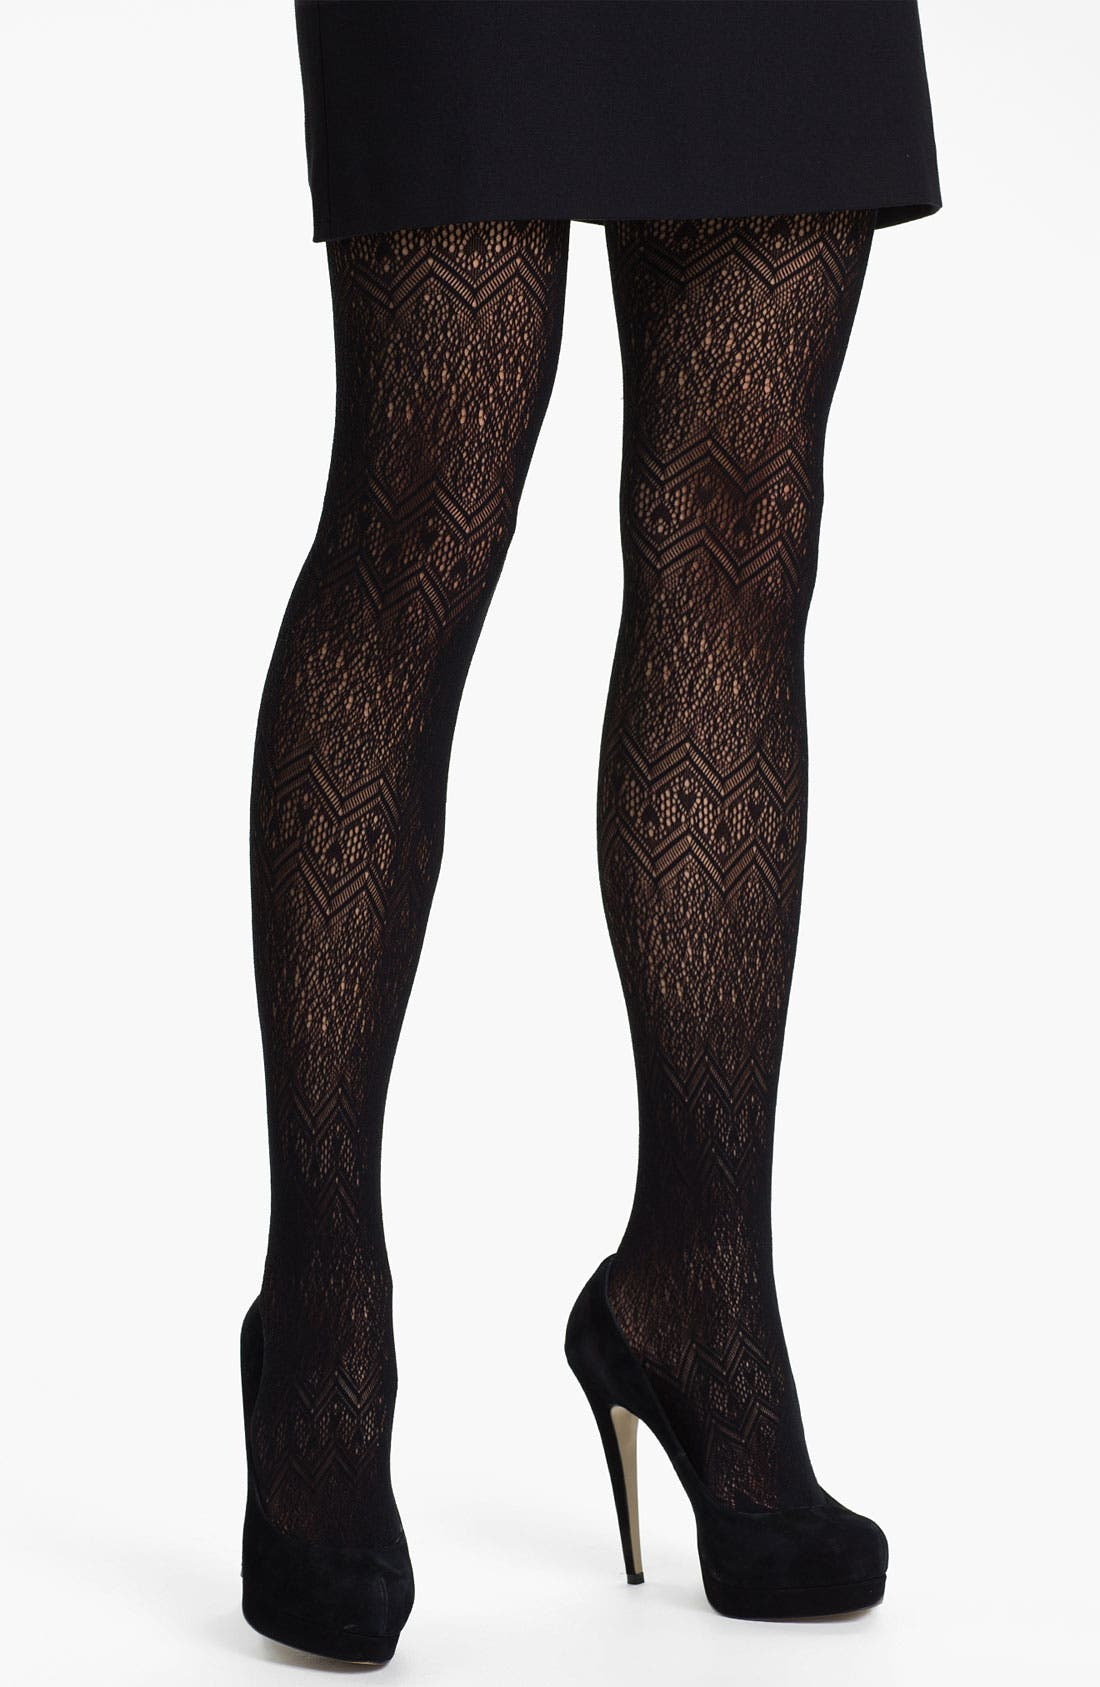 Alternate Image 1 Selected - Kensie 'Zigzag Mesh' Tights